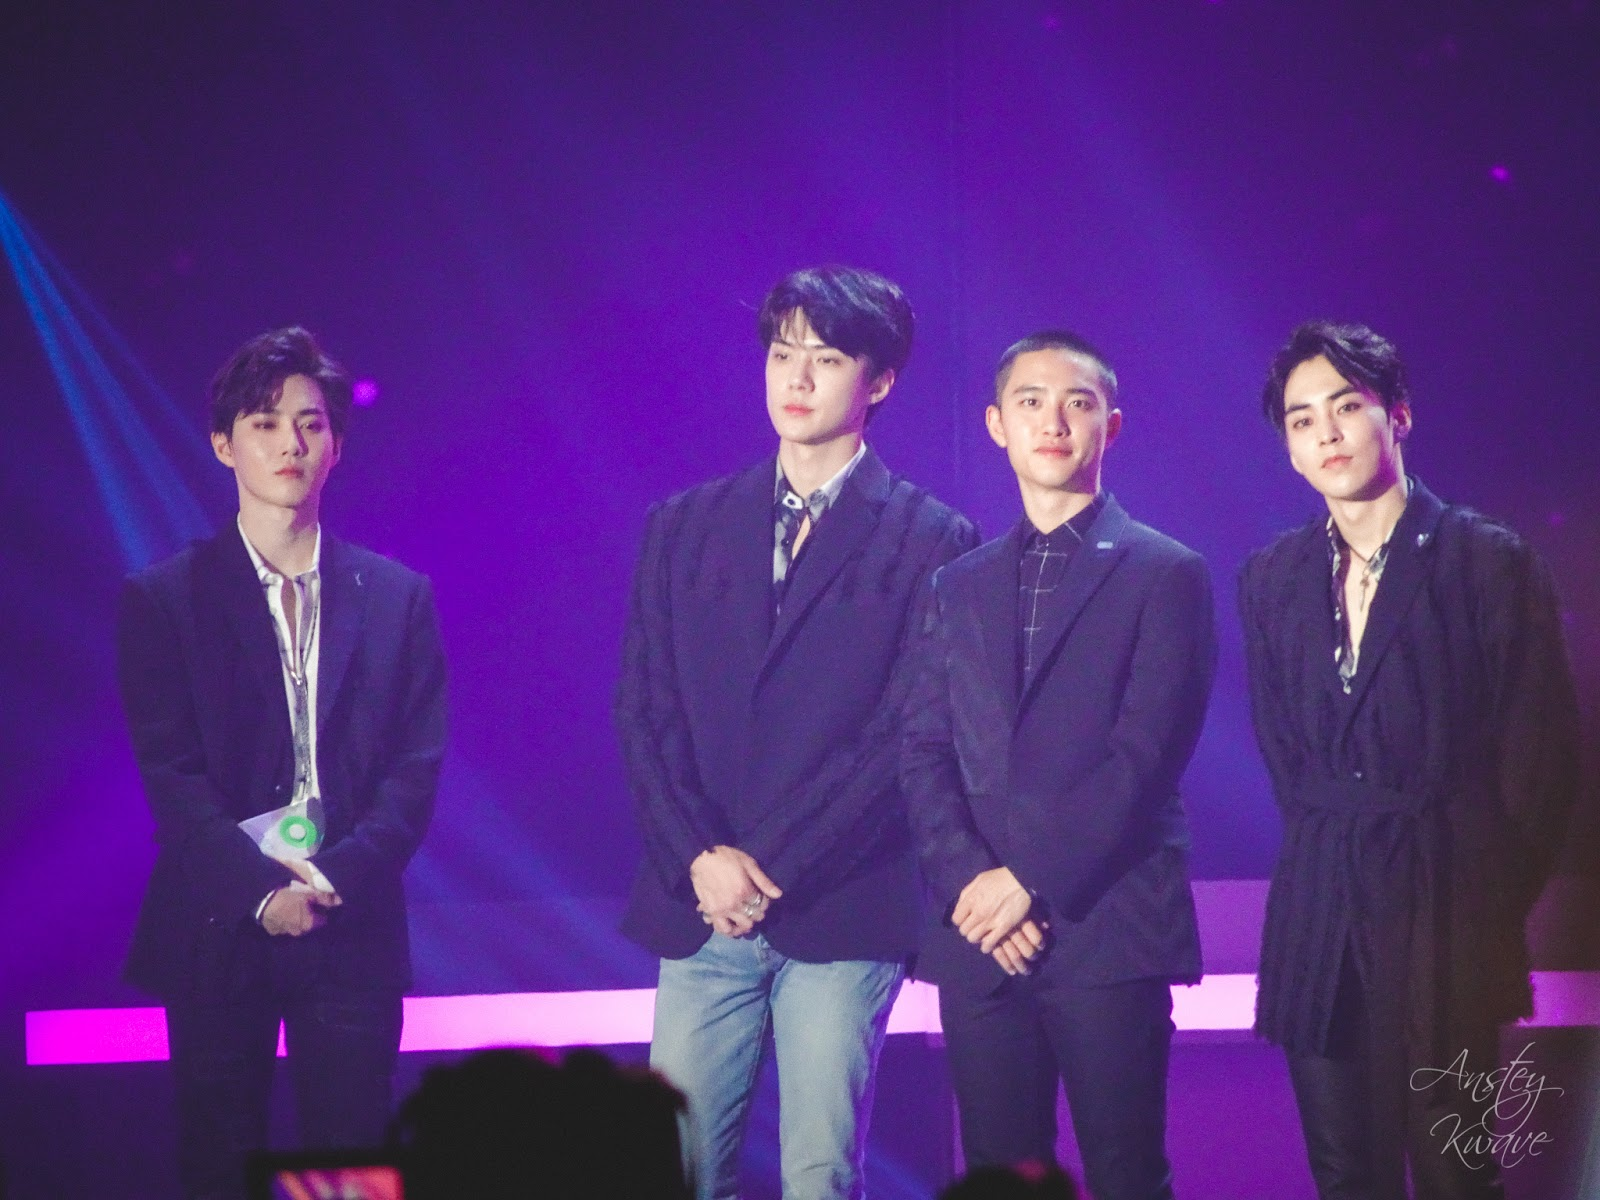 Famous Korean k-pop boy band EXO receiving award on stage at Melon Music Awards (MMA) 2017 in Seoul, South Korea